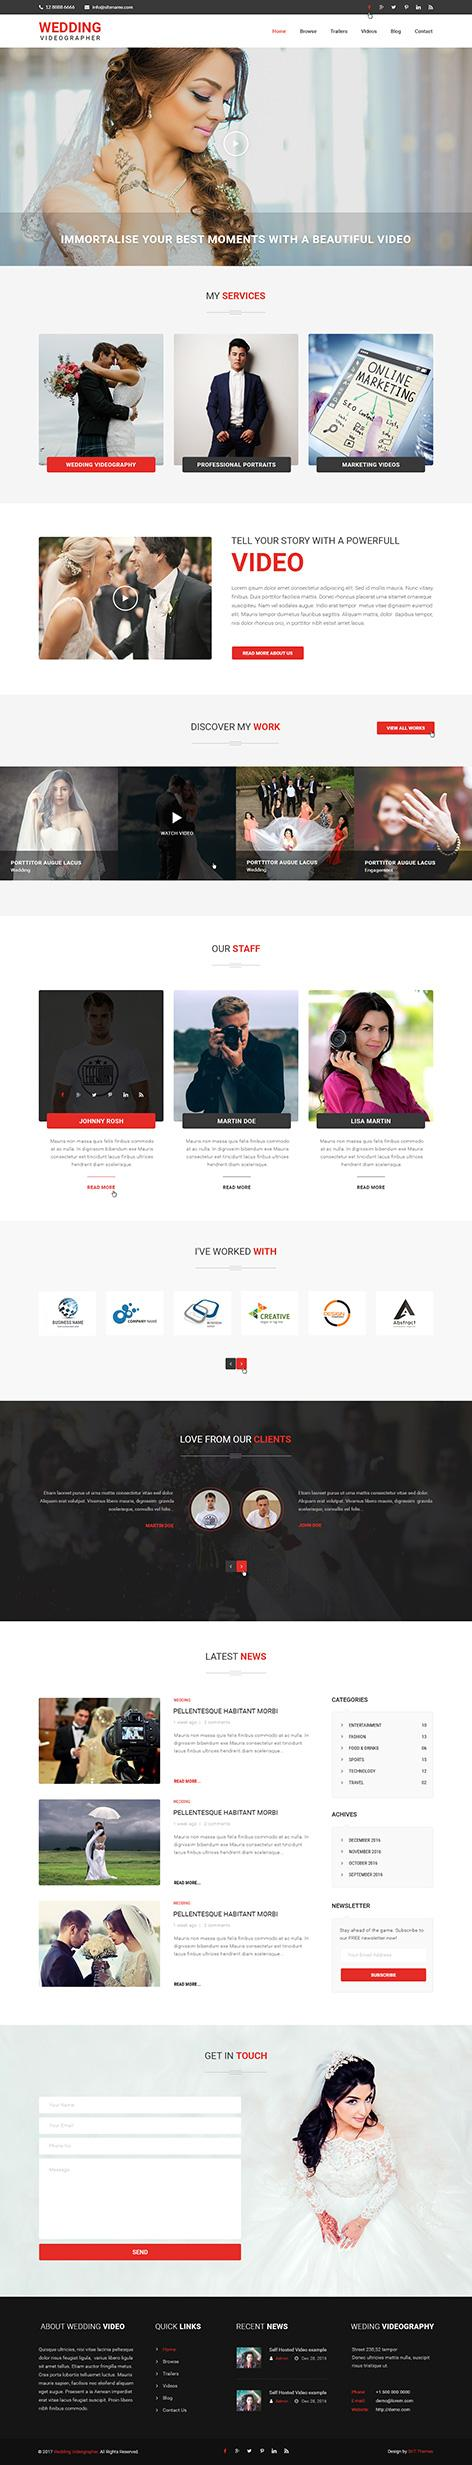 wedding videography wordpress theme1 - Wedding Videographer